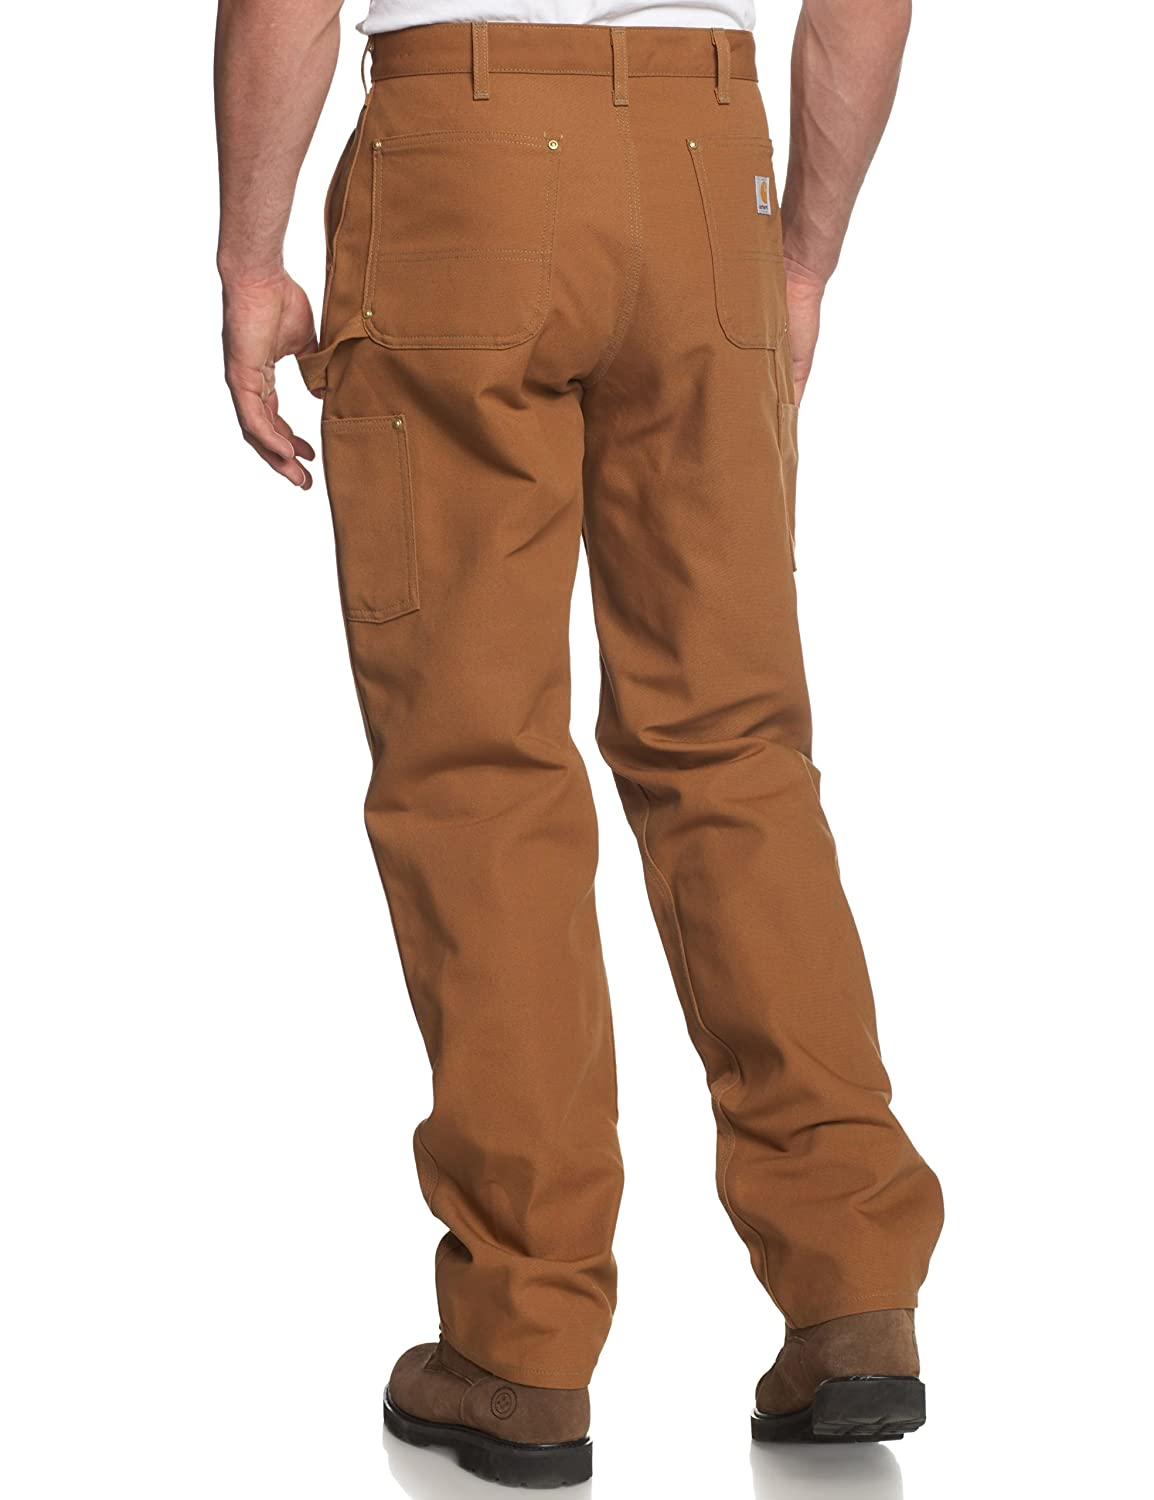 As somebody who is very detailed in researching the best value of my wardrobe pieces, I wanted to get some feedback from MFA on what chinos are your favorites and why. Below are some links to some of the most talked about chinos as well as some I'm personally interested in buying.